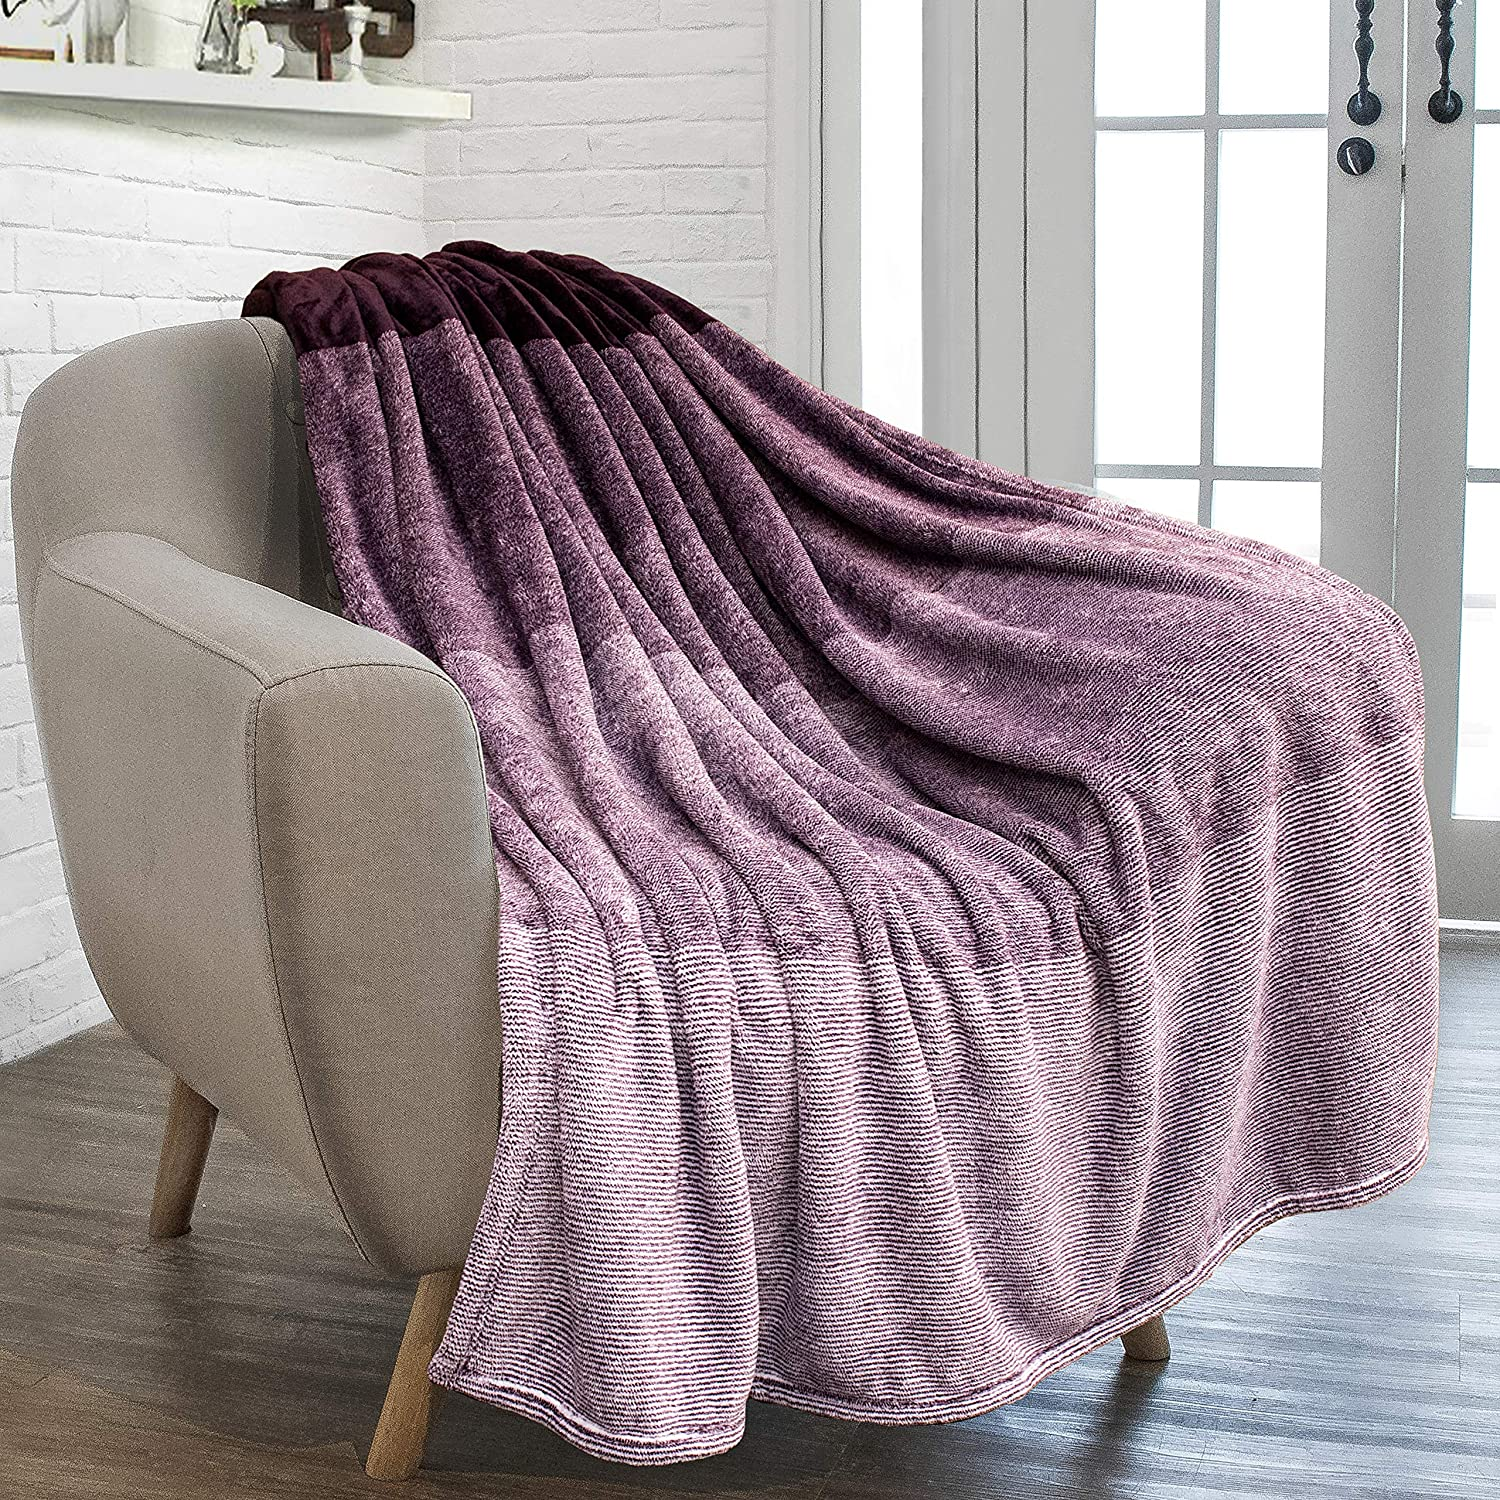 Decorative Velvet Throw for Couch Sofa Bed